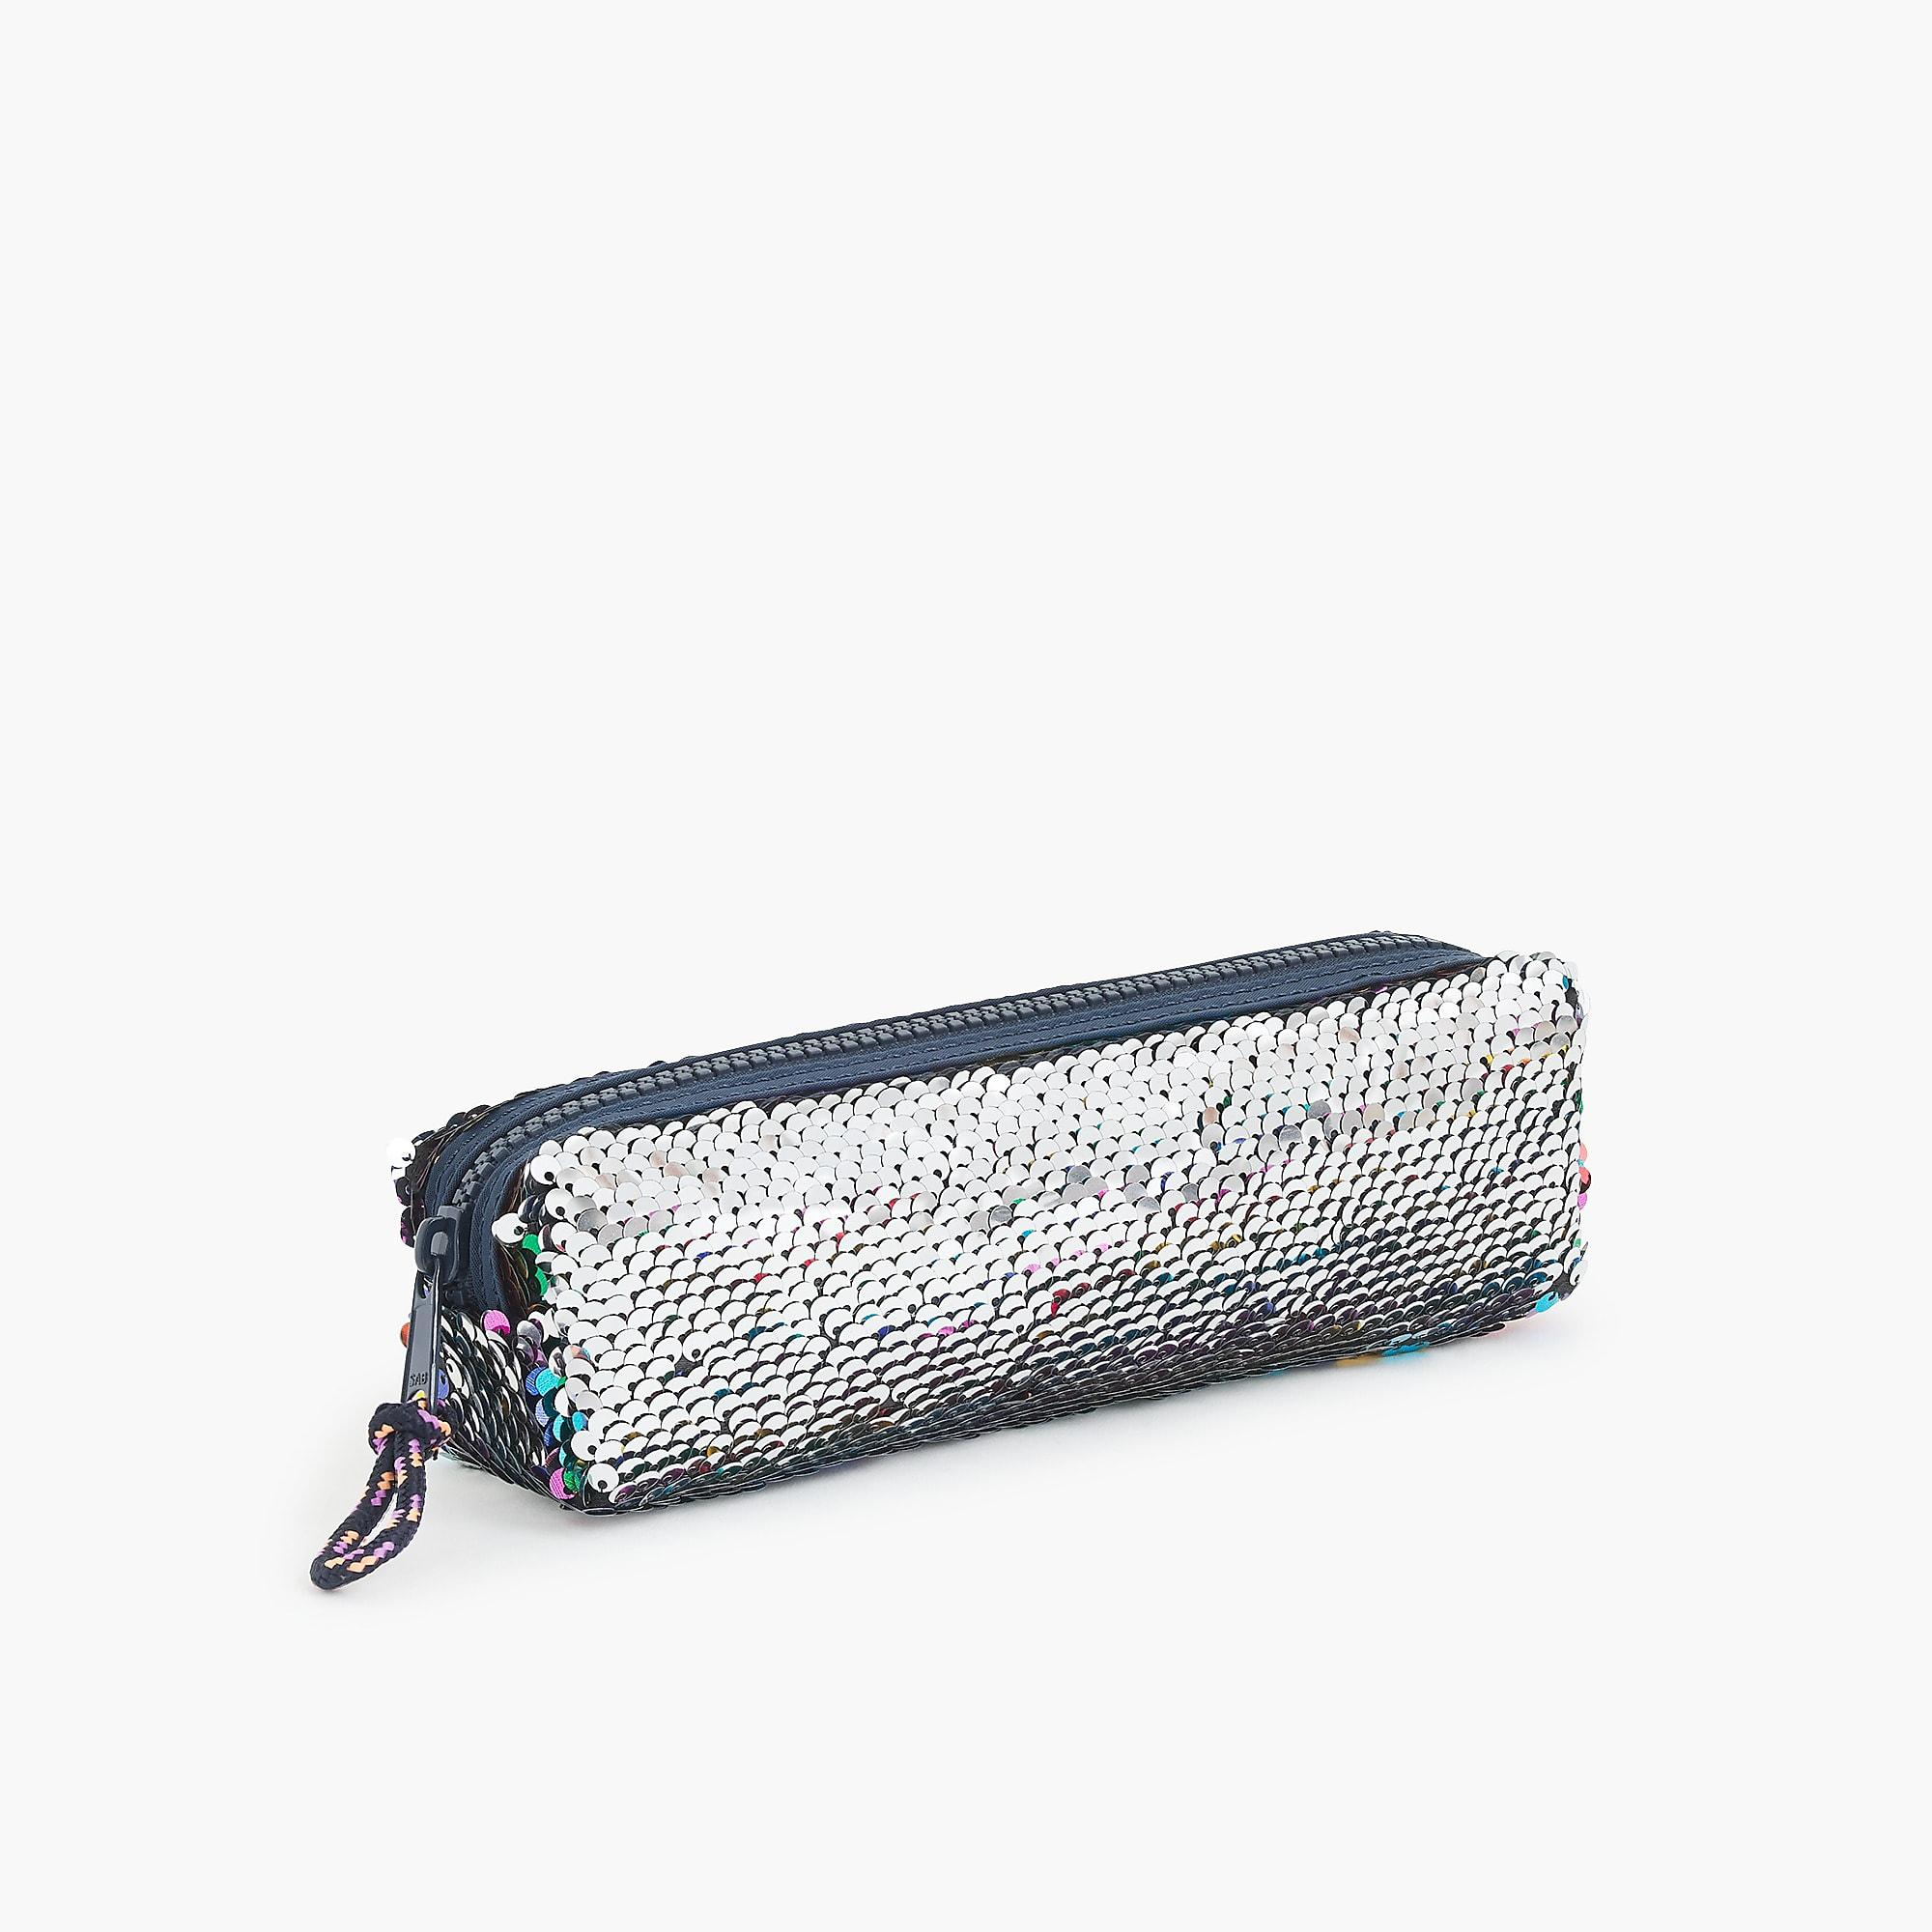 61683ff44 J.Crew Girls' Pencil Case In Reversible Sequins in Blue - Lyst